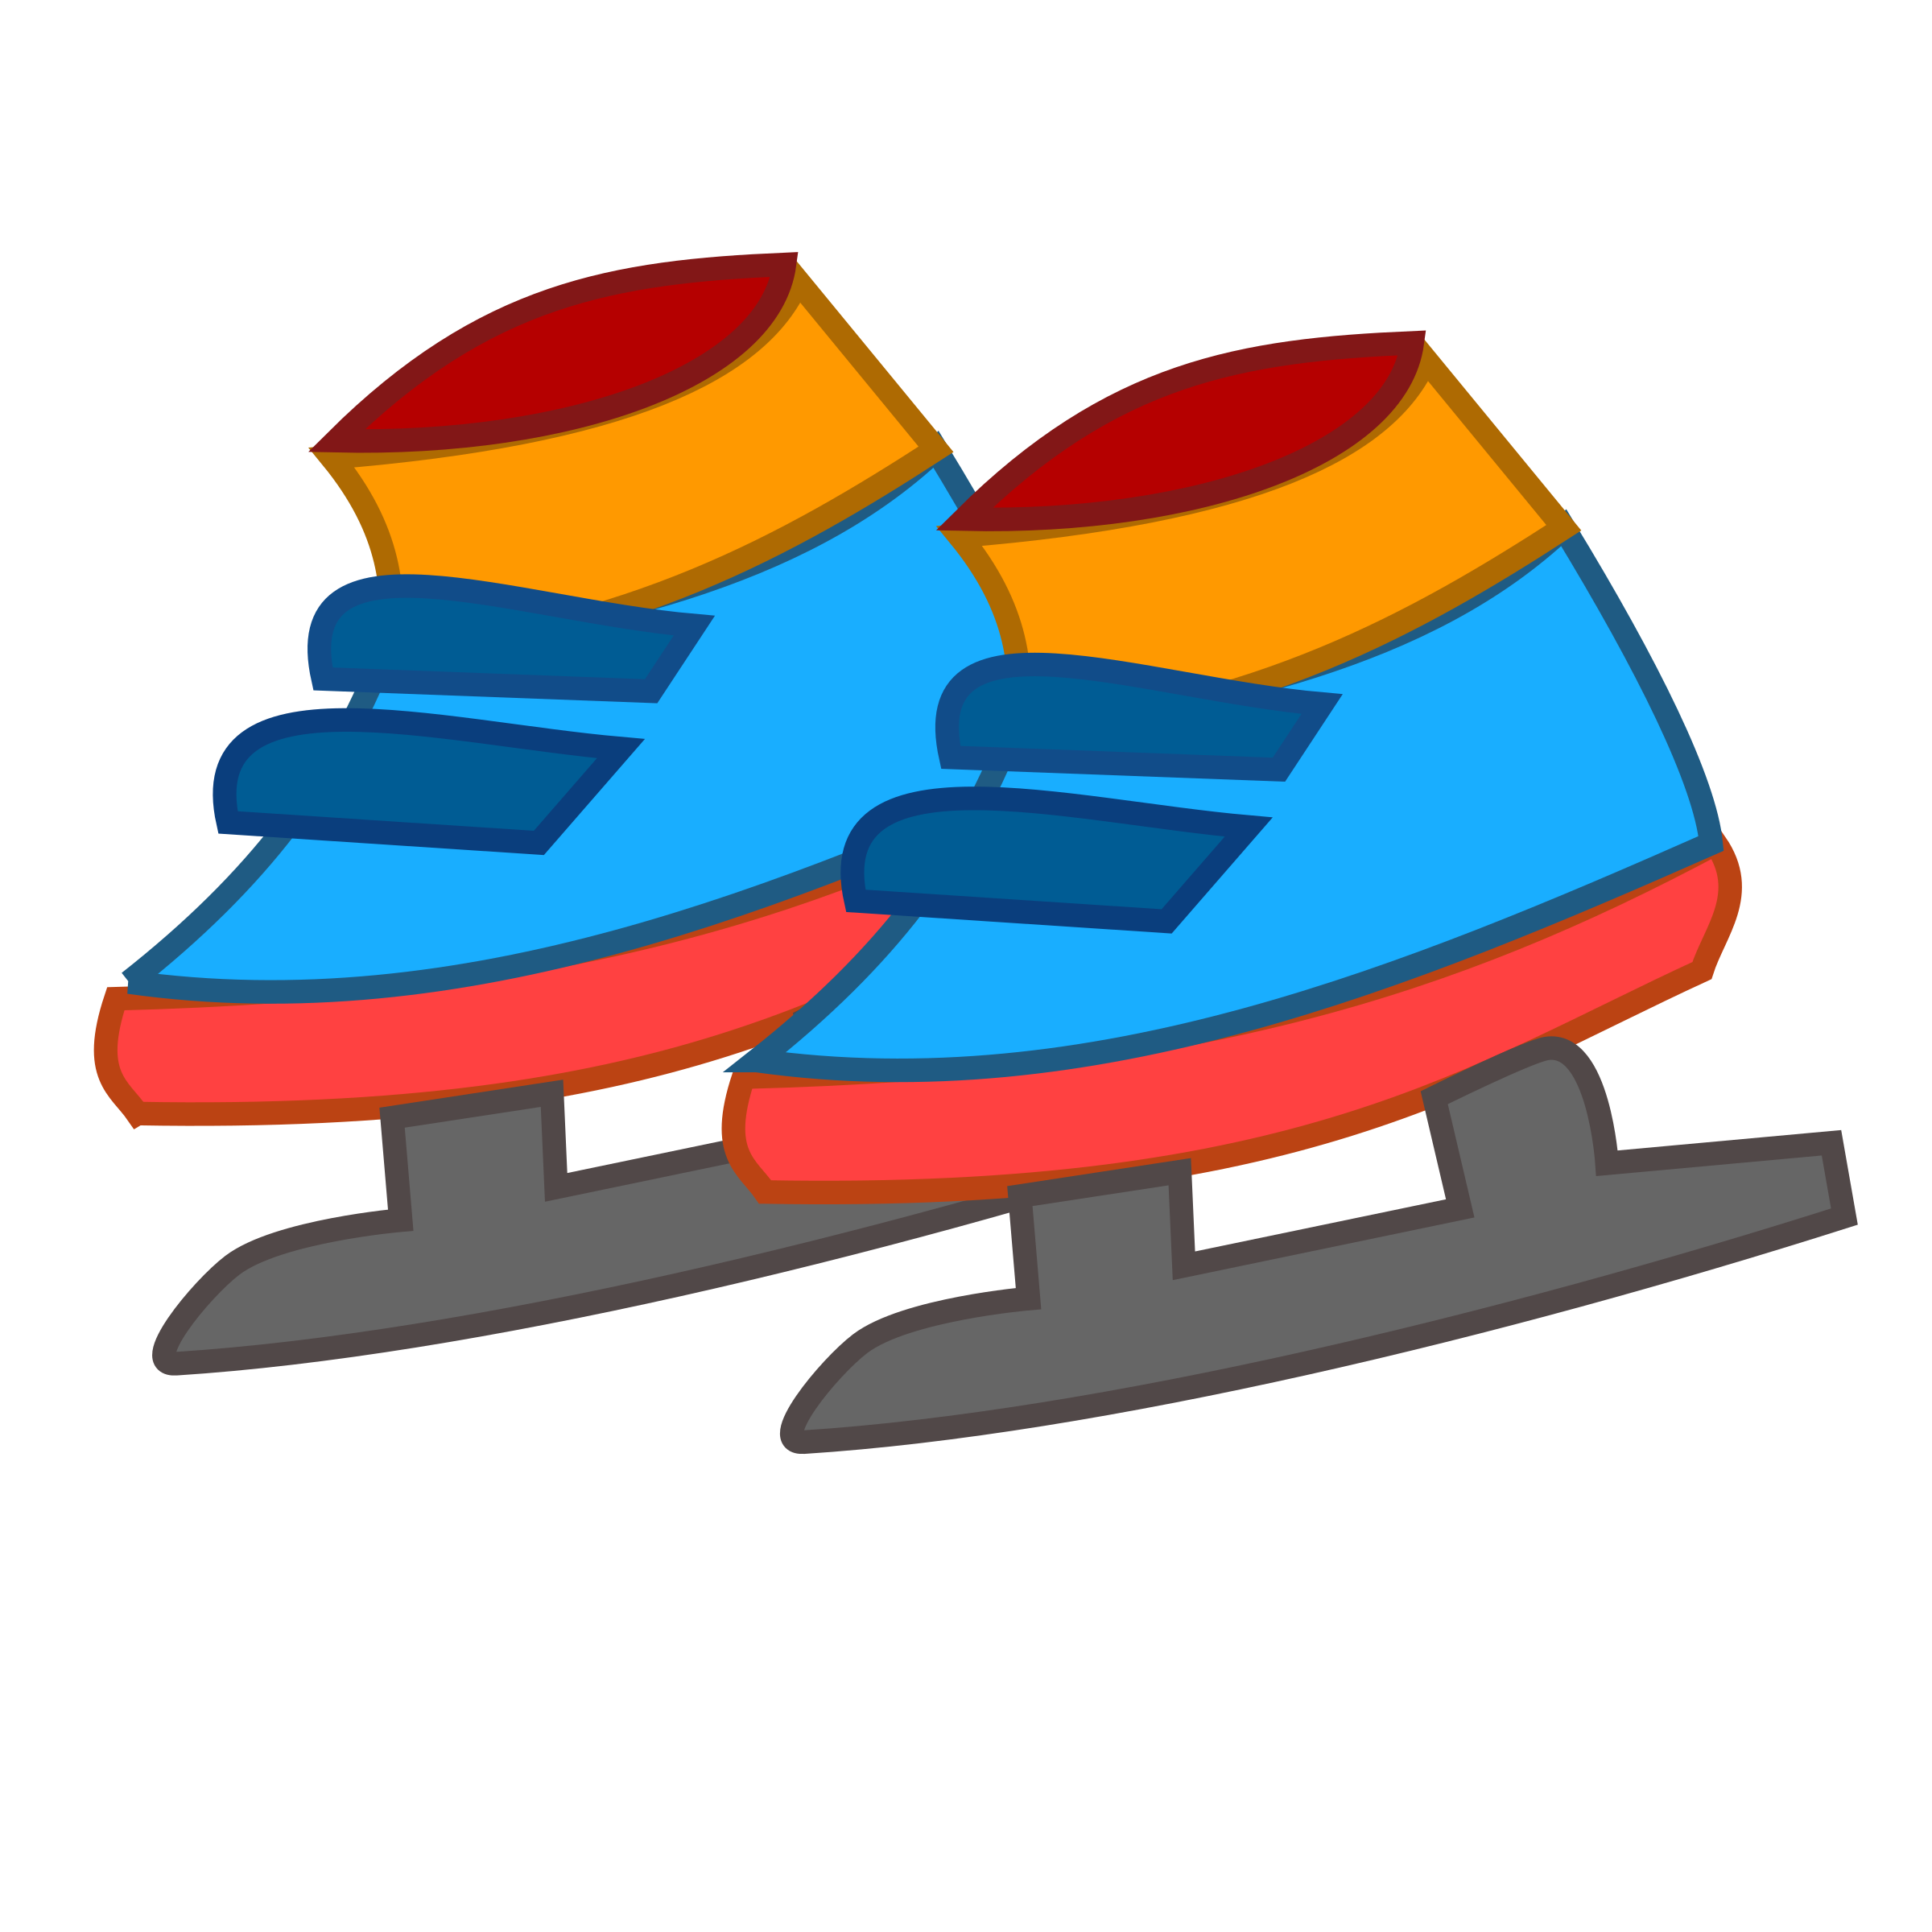 Winter clipart shoe. Skating shoes icon big